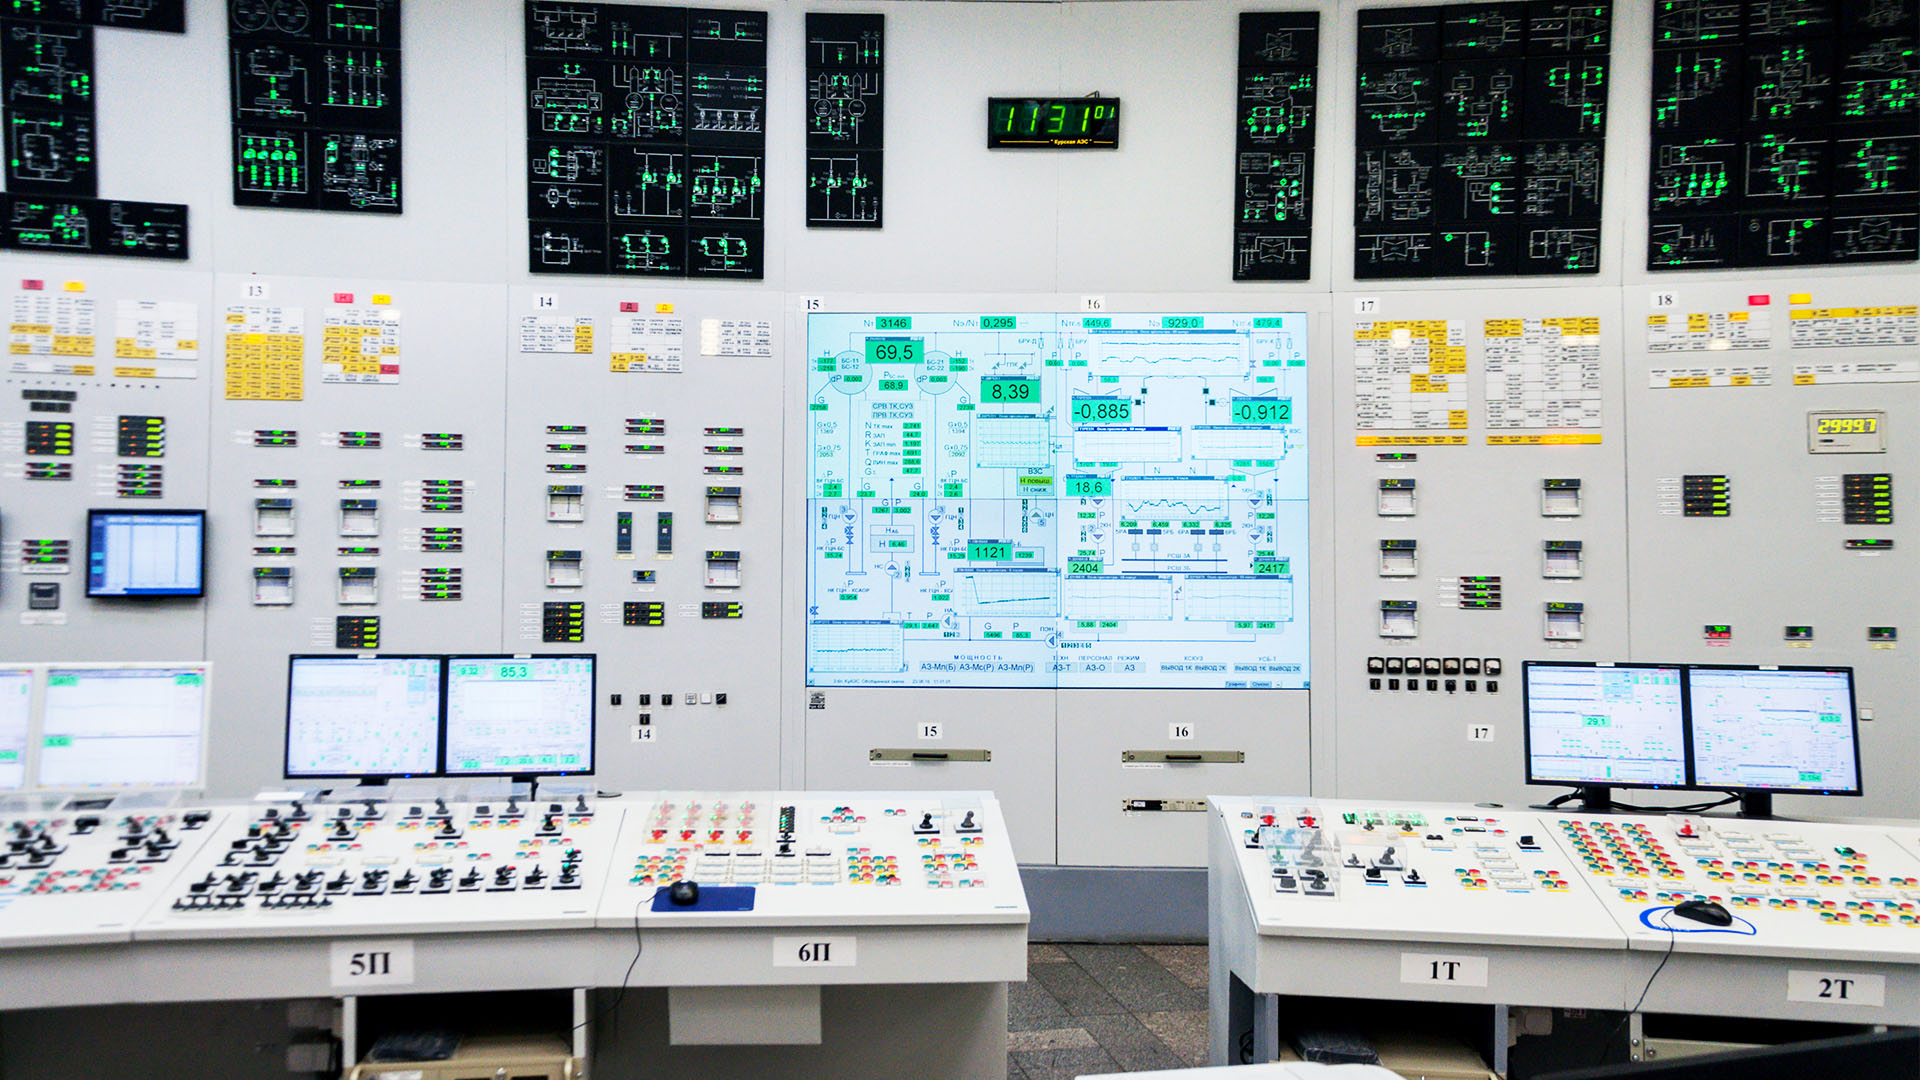 Arilou, NNGFutureVision, Cyber Security, Prediction, Insight, ICS, SCADA, Automotive, Future automotive cyber-security, nuclear power plant control room